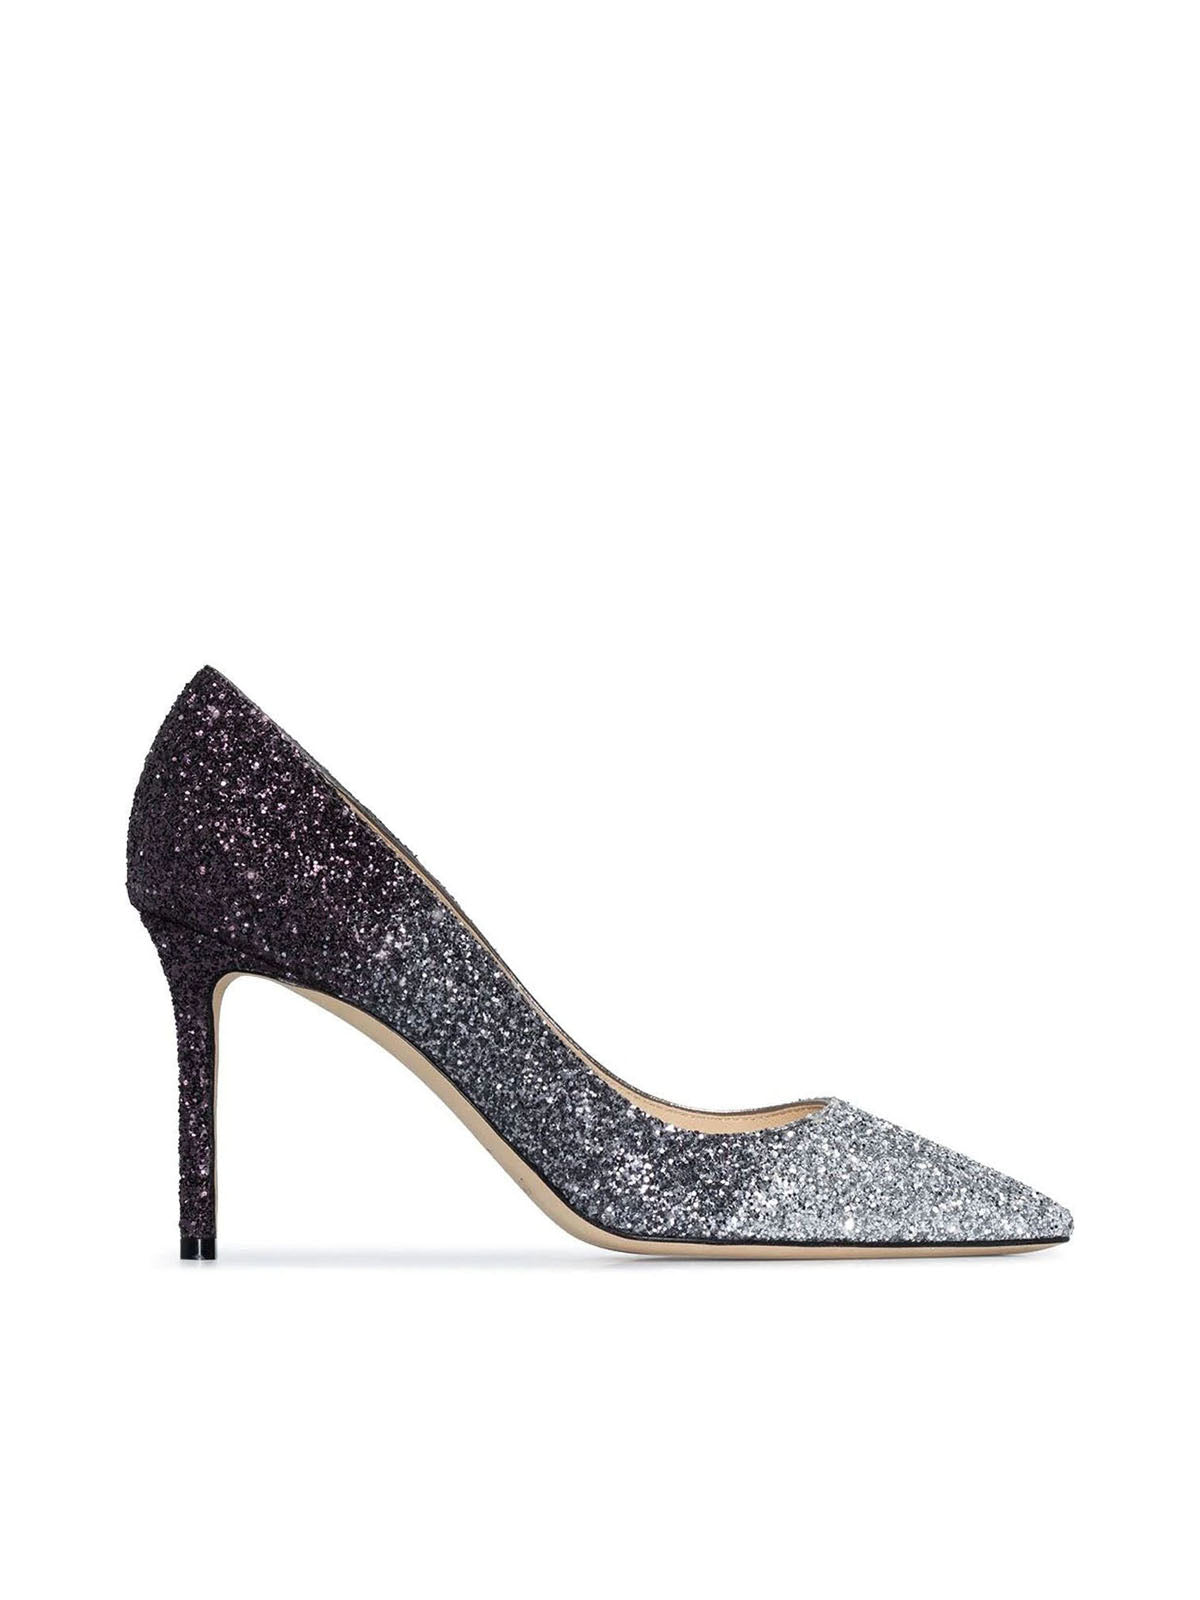 ROMY 85 METALLIC DEGRADE` PUMPS